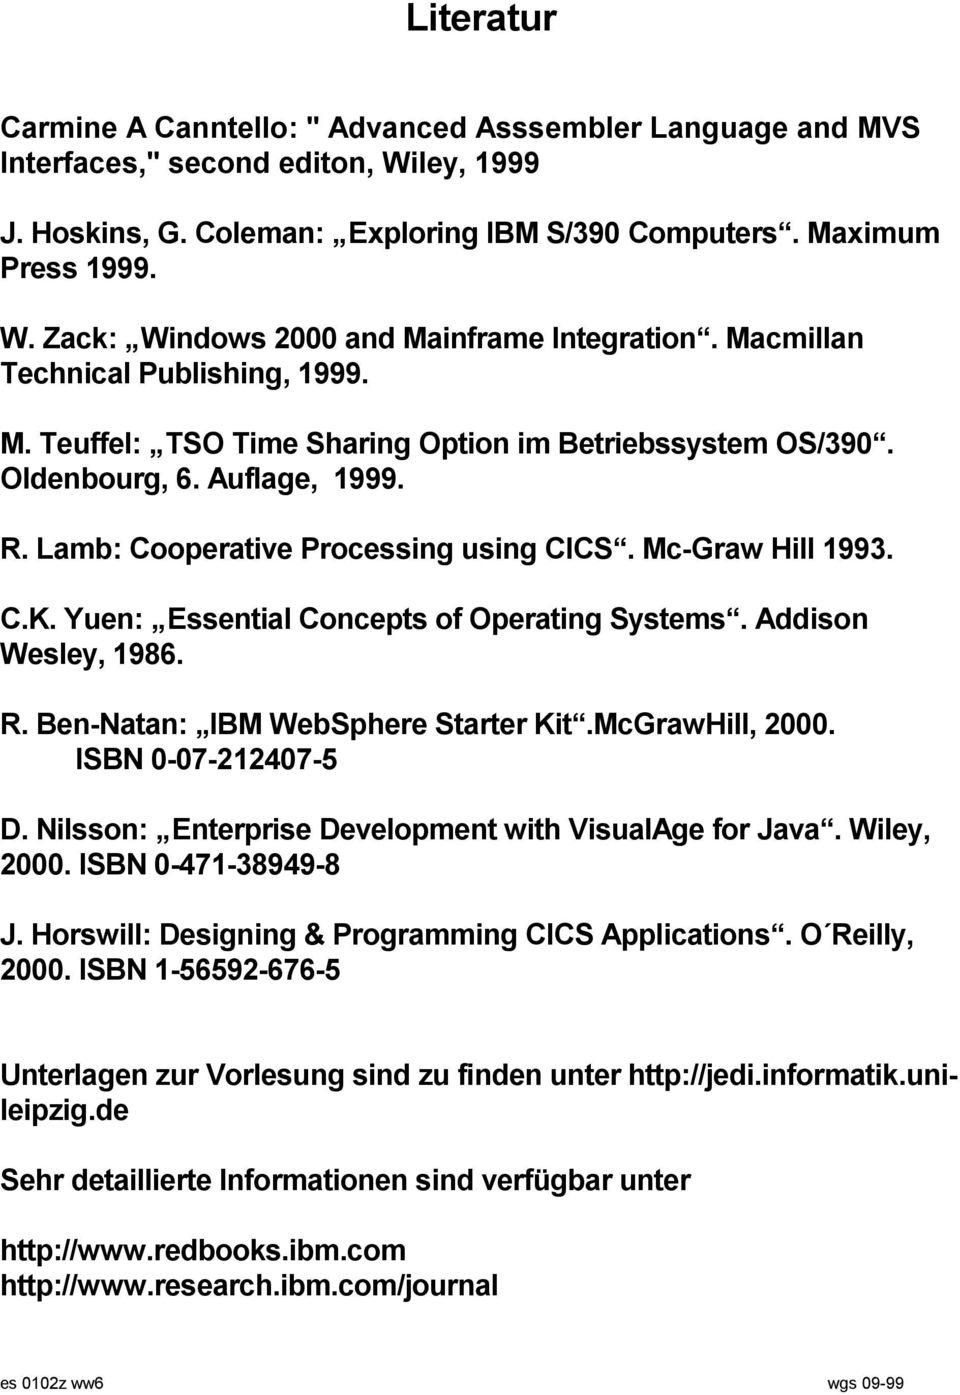 Yuen: Essential Concepts of Operating Systems. Addison Wesley, 1986. R. Ben-Natan: IBM WebSphere Starter Kit.McGrawHill, 2000. ISBN 0-07-212407-5 D.